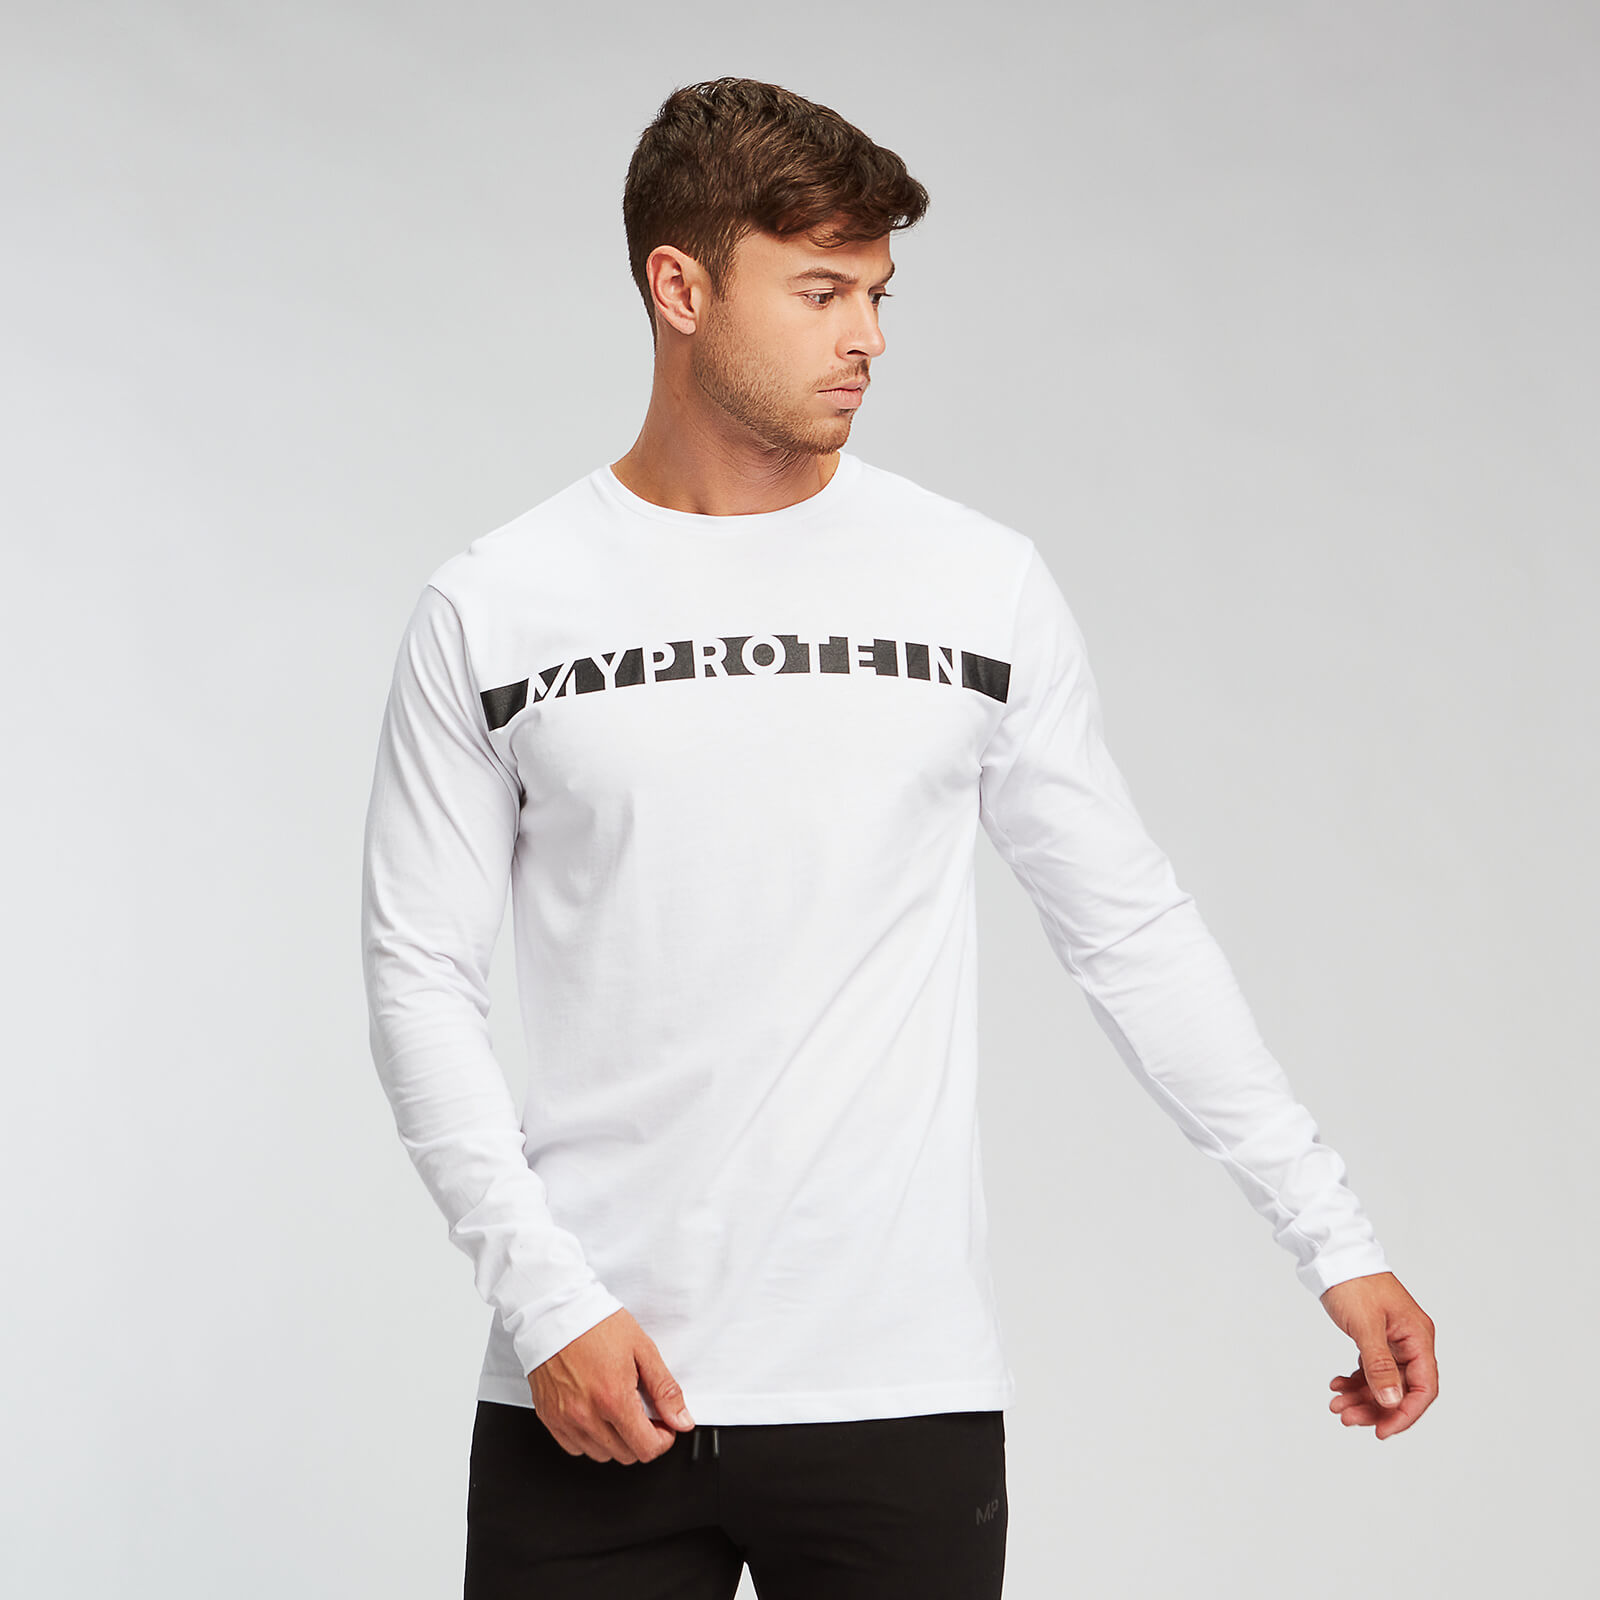 Das Original Long Sleeve T-Shirt - Weiß - L von MP